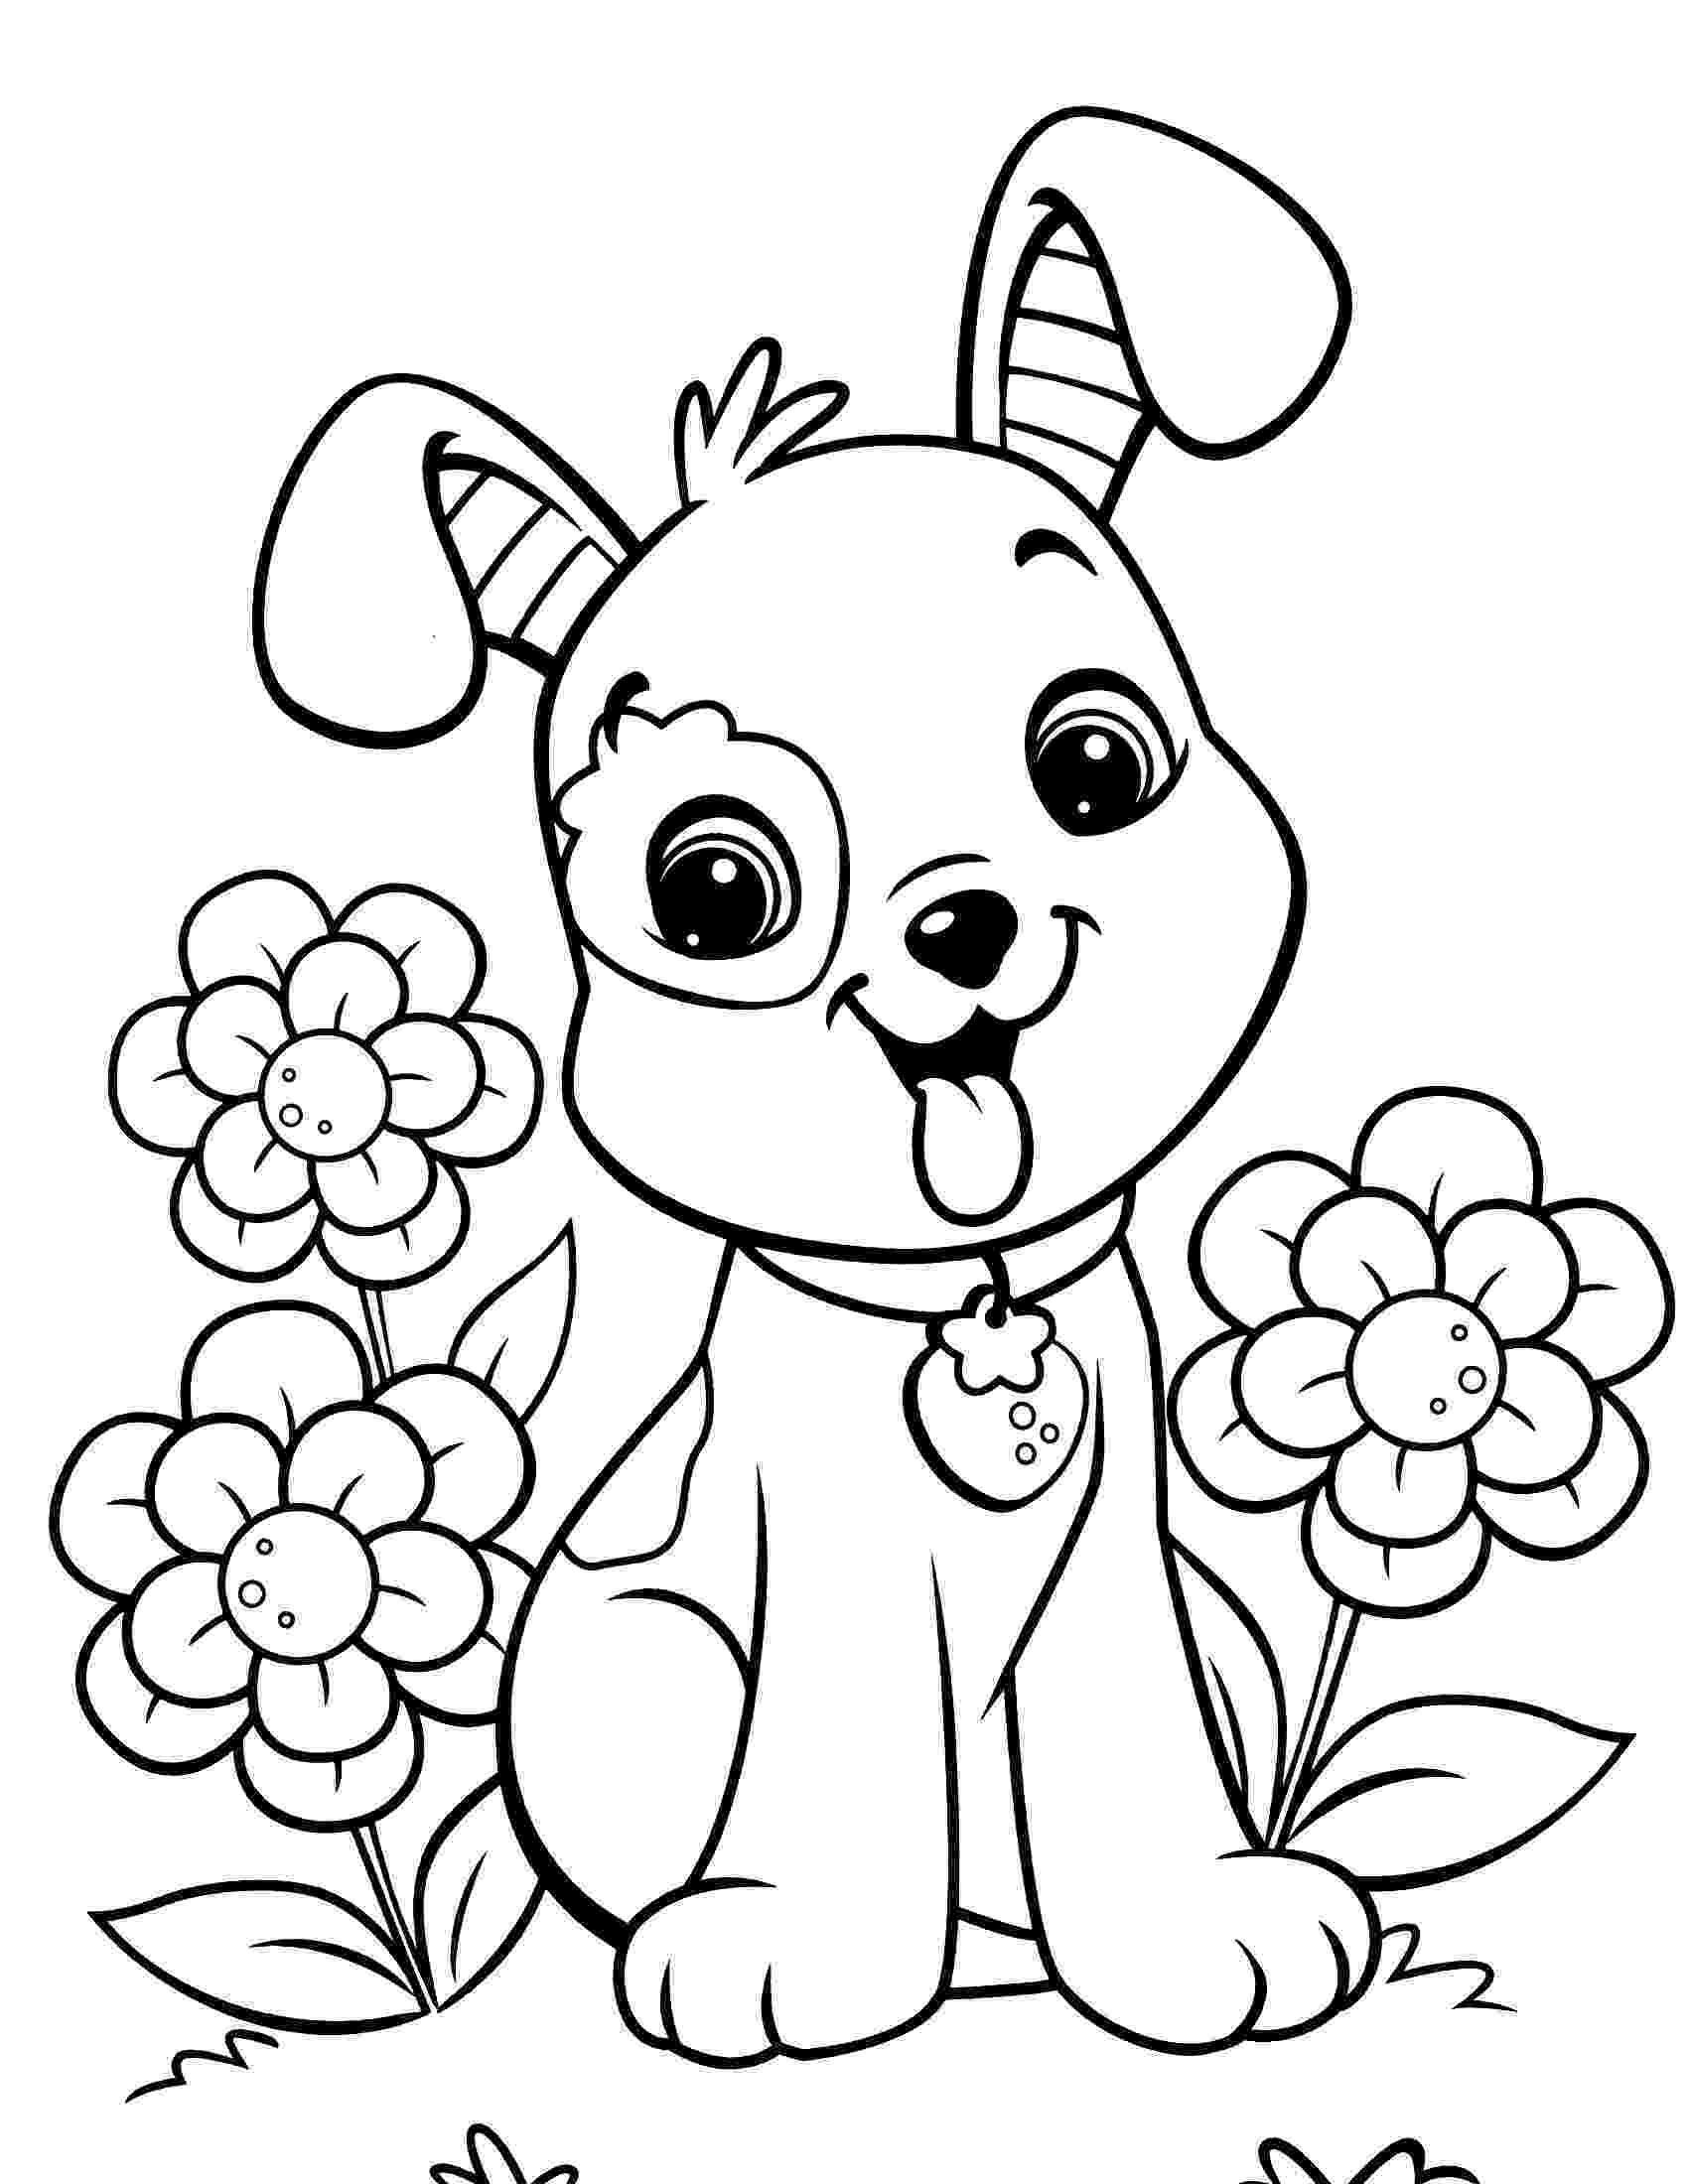 dogs and puppies coloring pages free printable dog coloring pages for kids pages and puppies coloring dogs